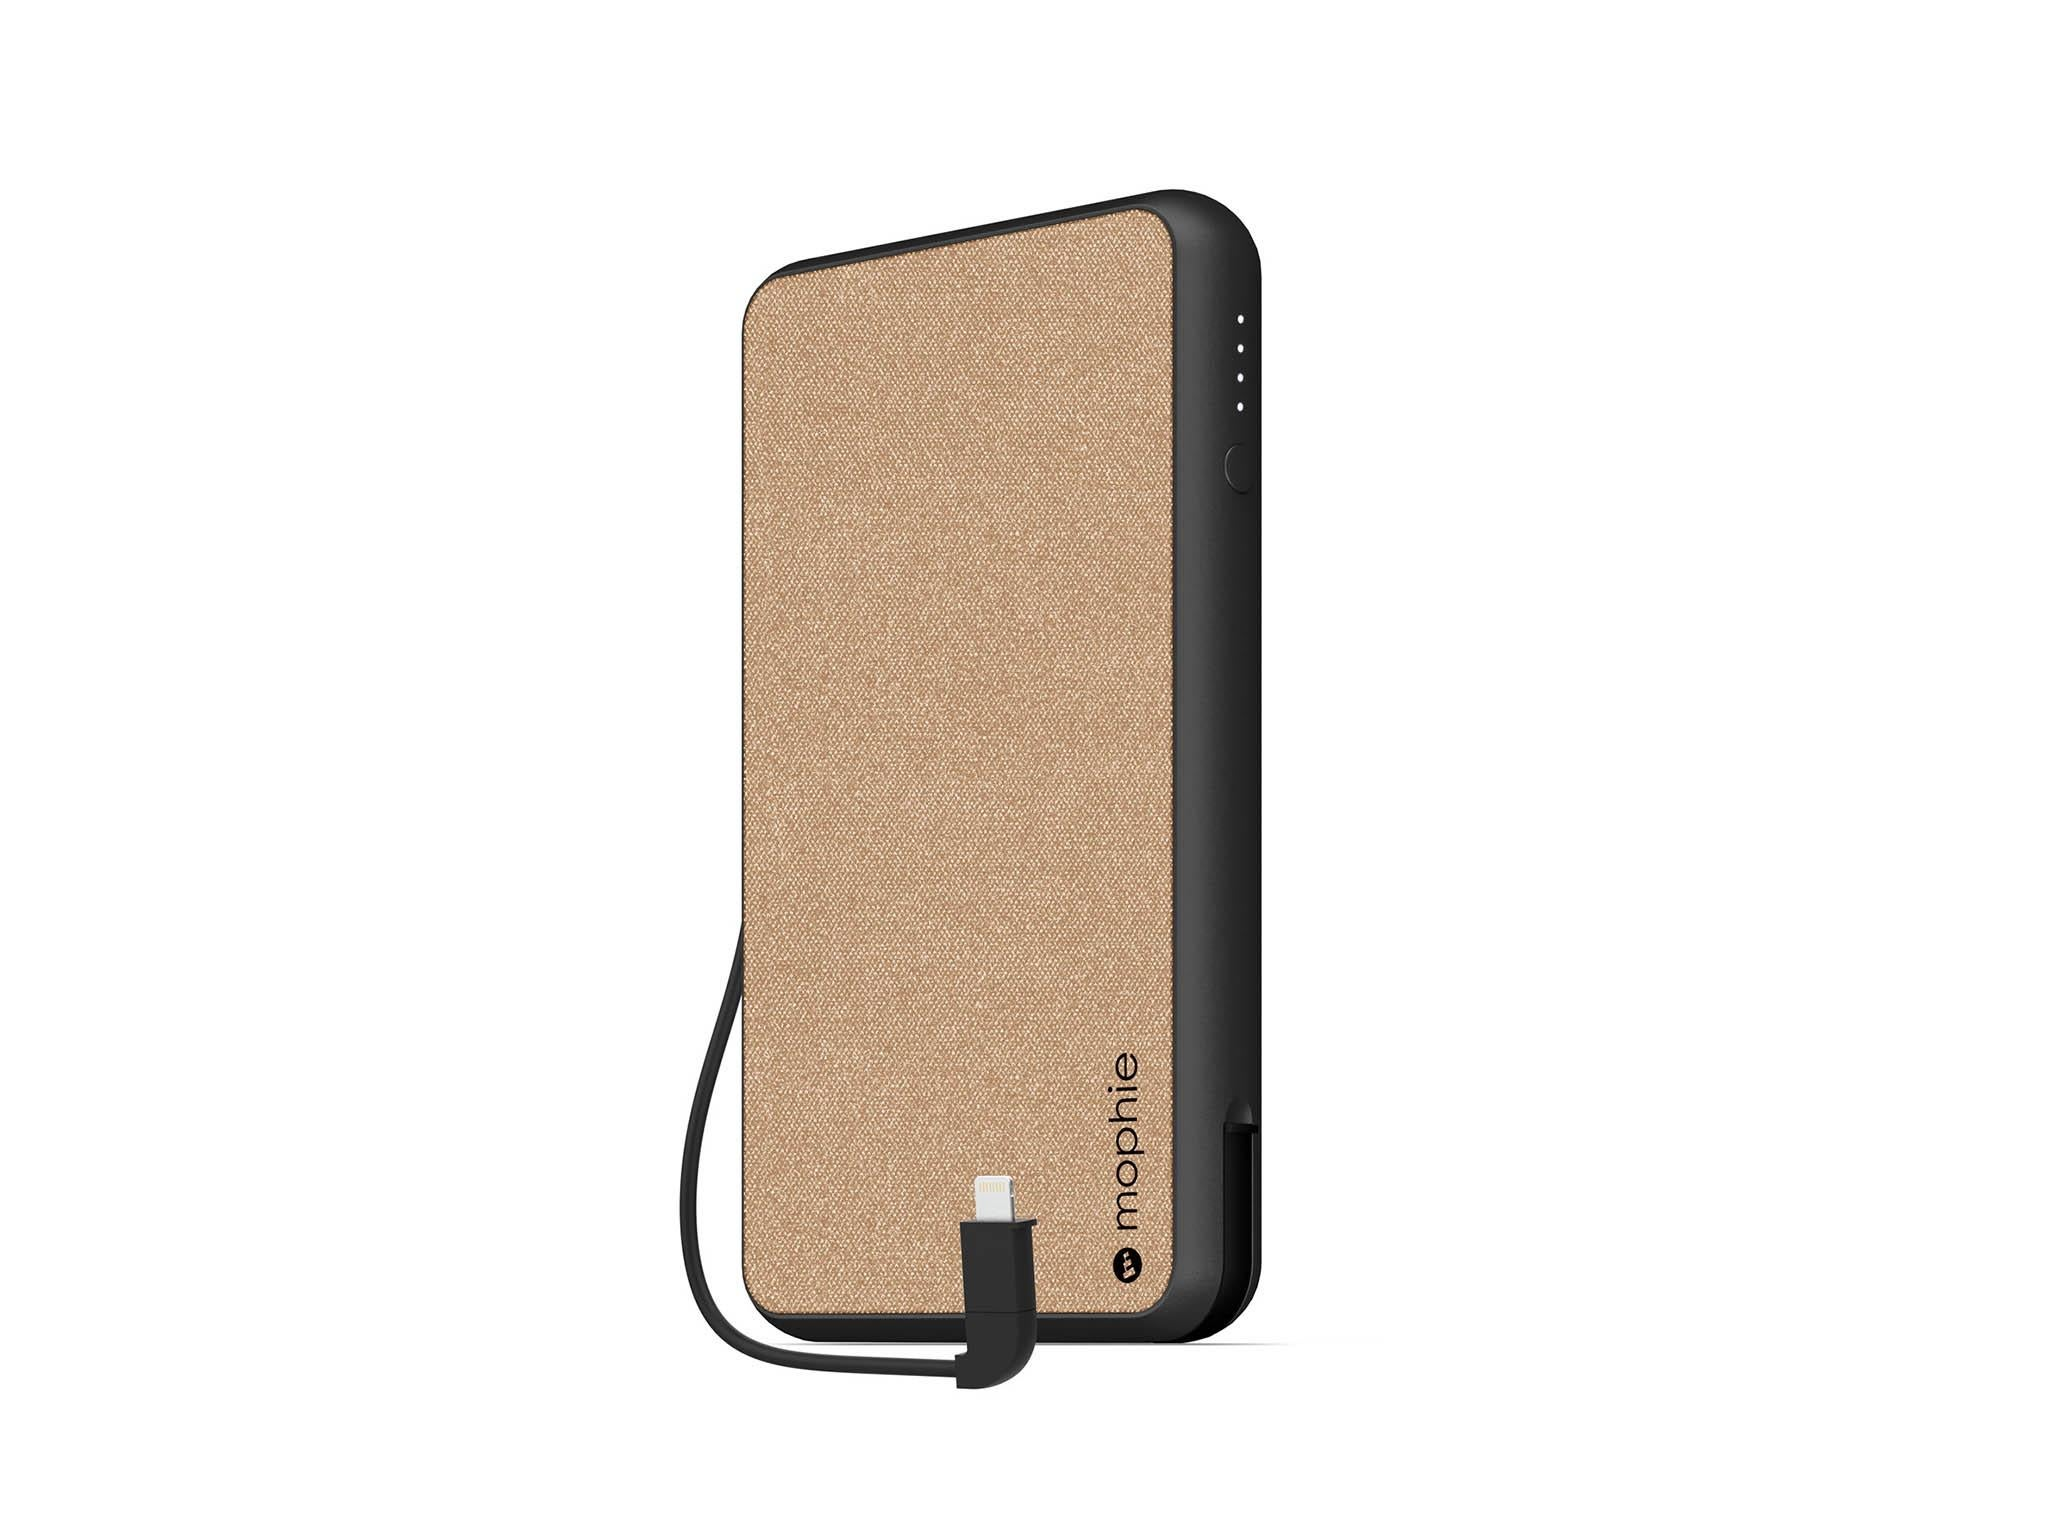 buy online 5dc29 fe9ef Best portable phone charger guide: What to use to recharge all your ...